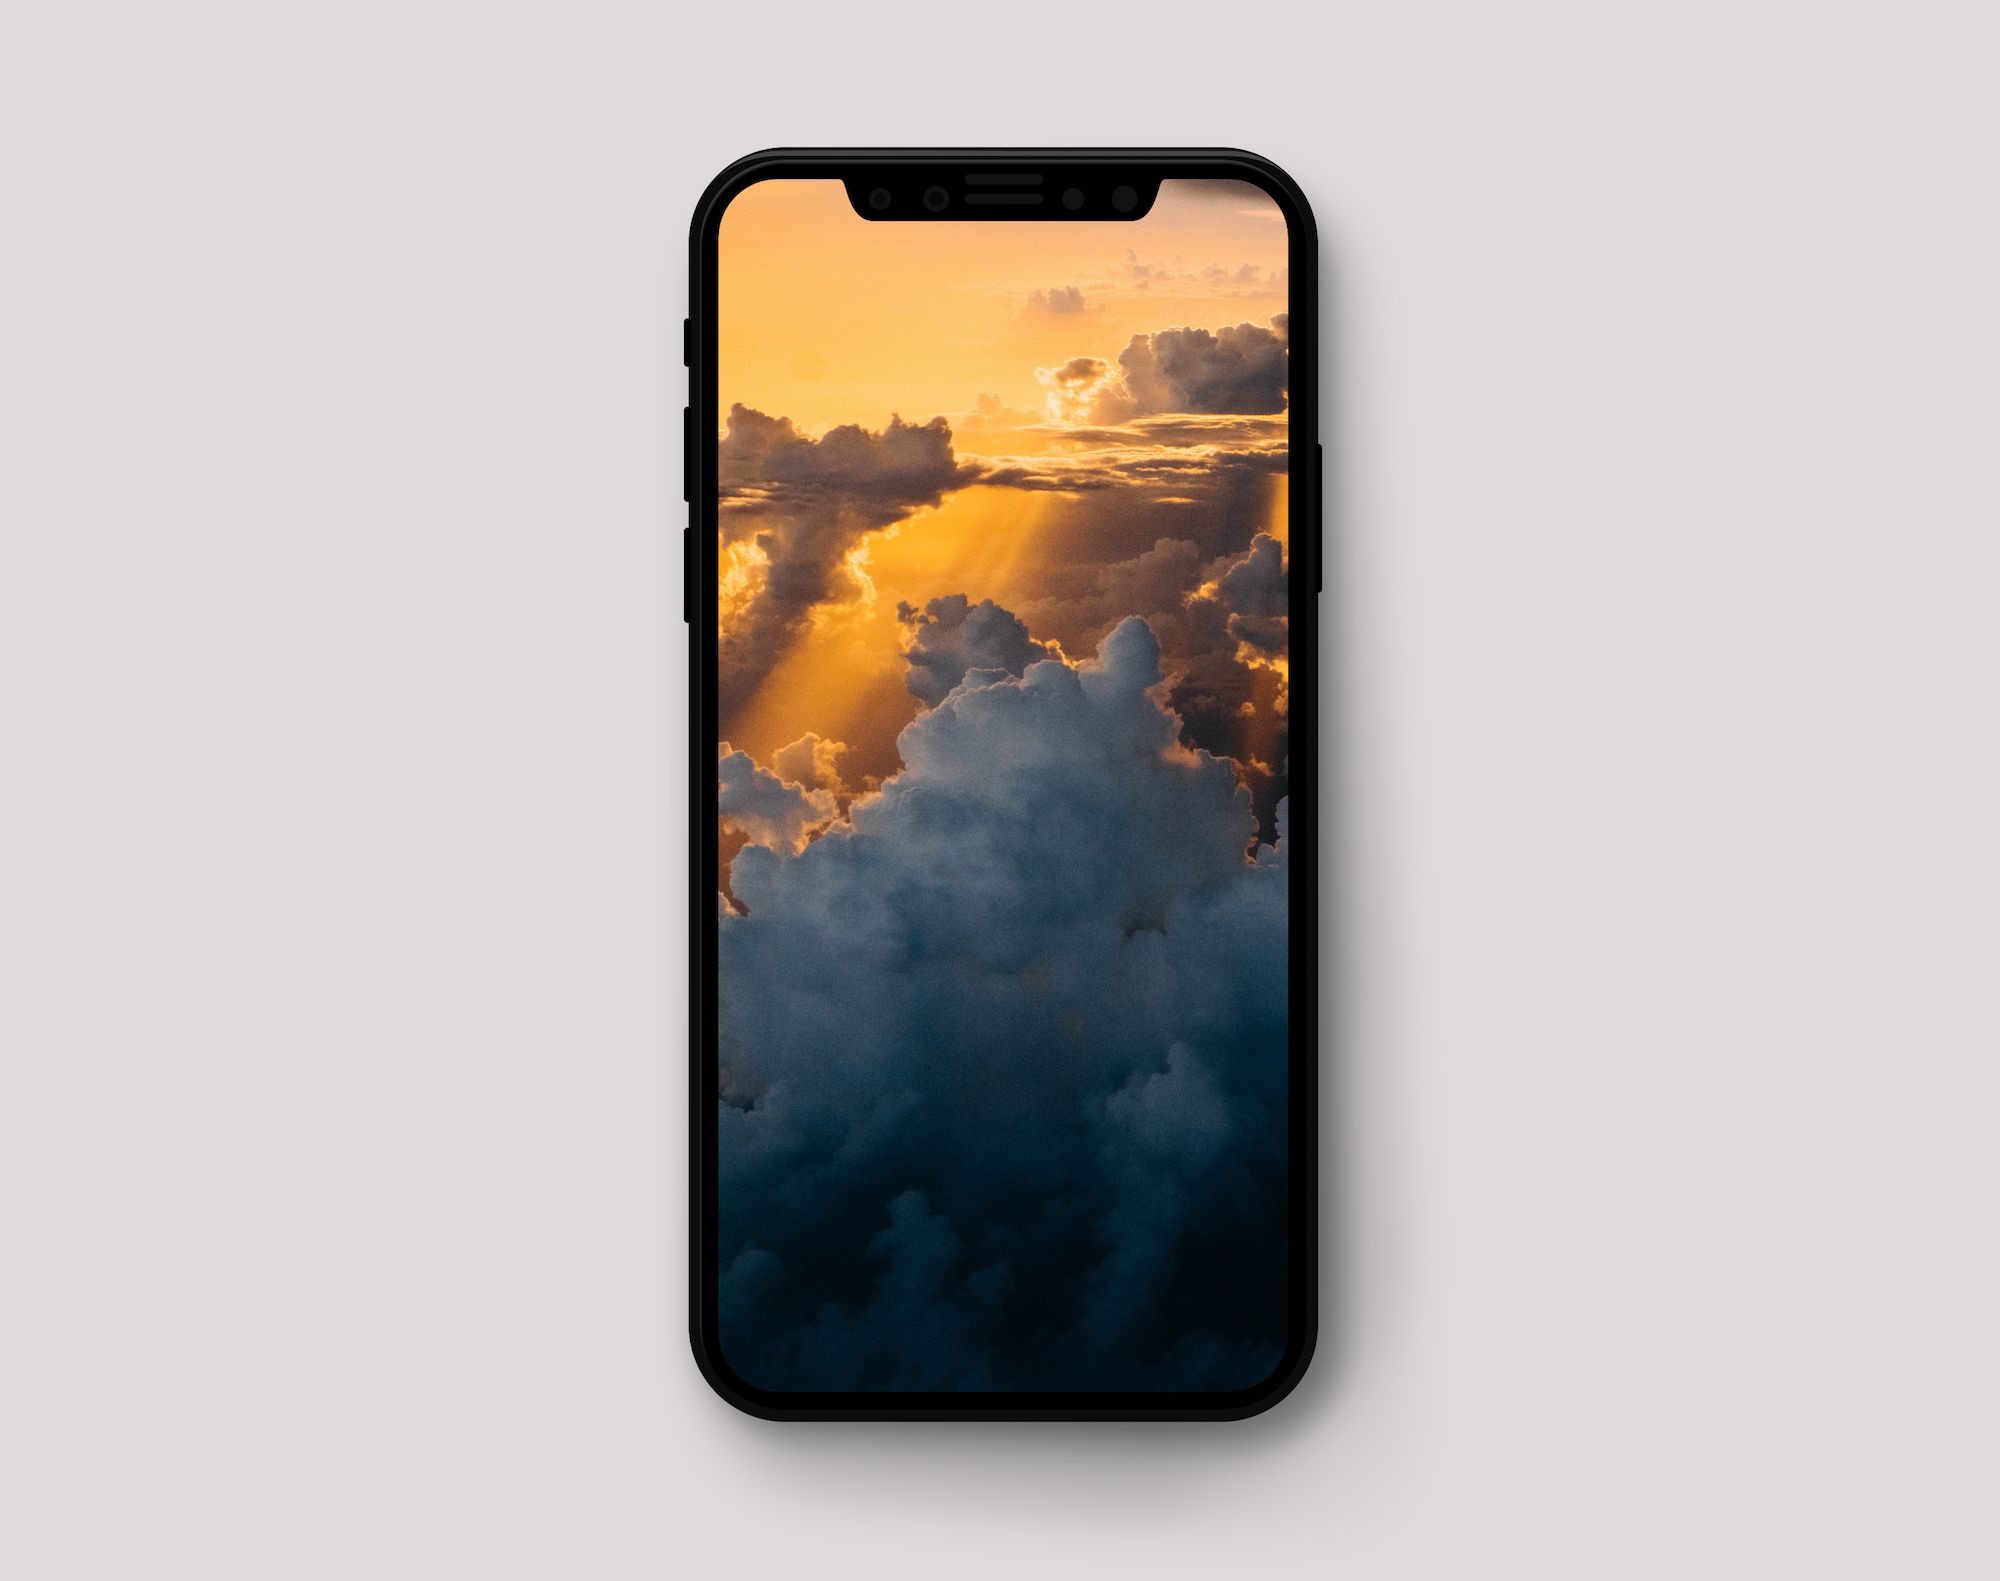 Iphone Wallpaper: IPhone X Wallpaper Pack 3